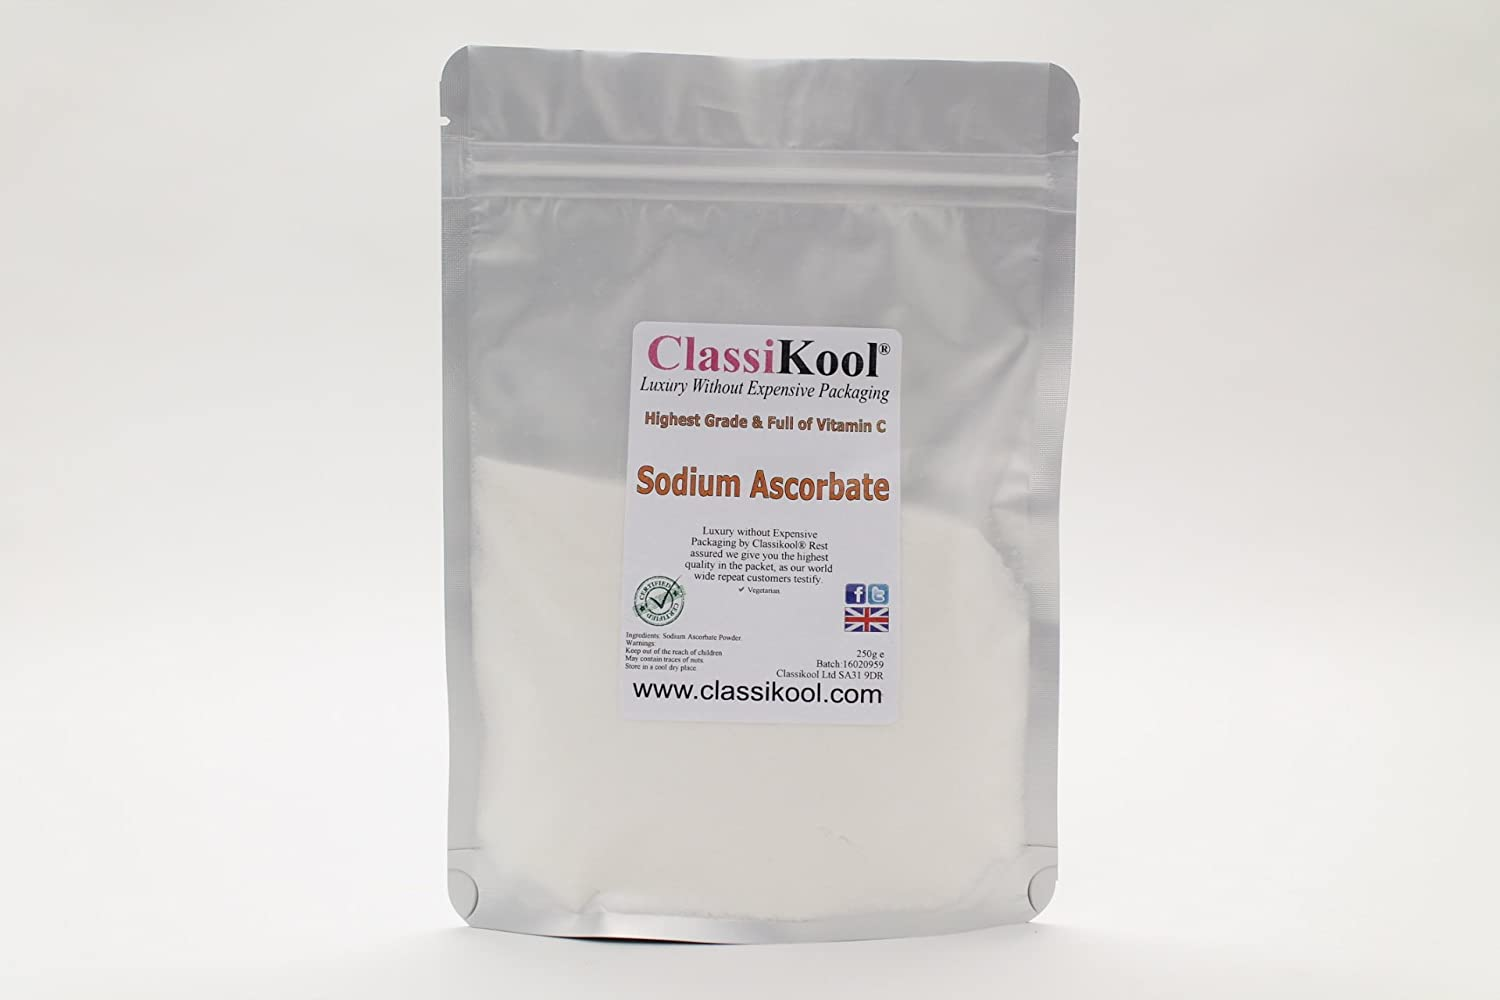 SIMPLY HEALTHY SODIUM ASCORBATE 100g VITAMIN C PHARMACEUTICAL GRADE